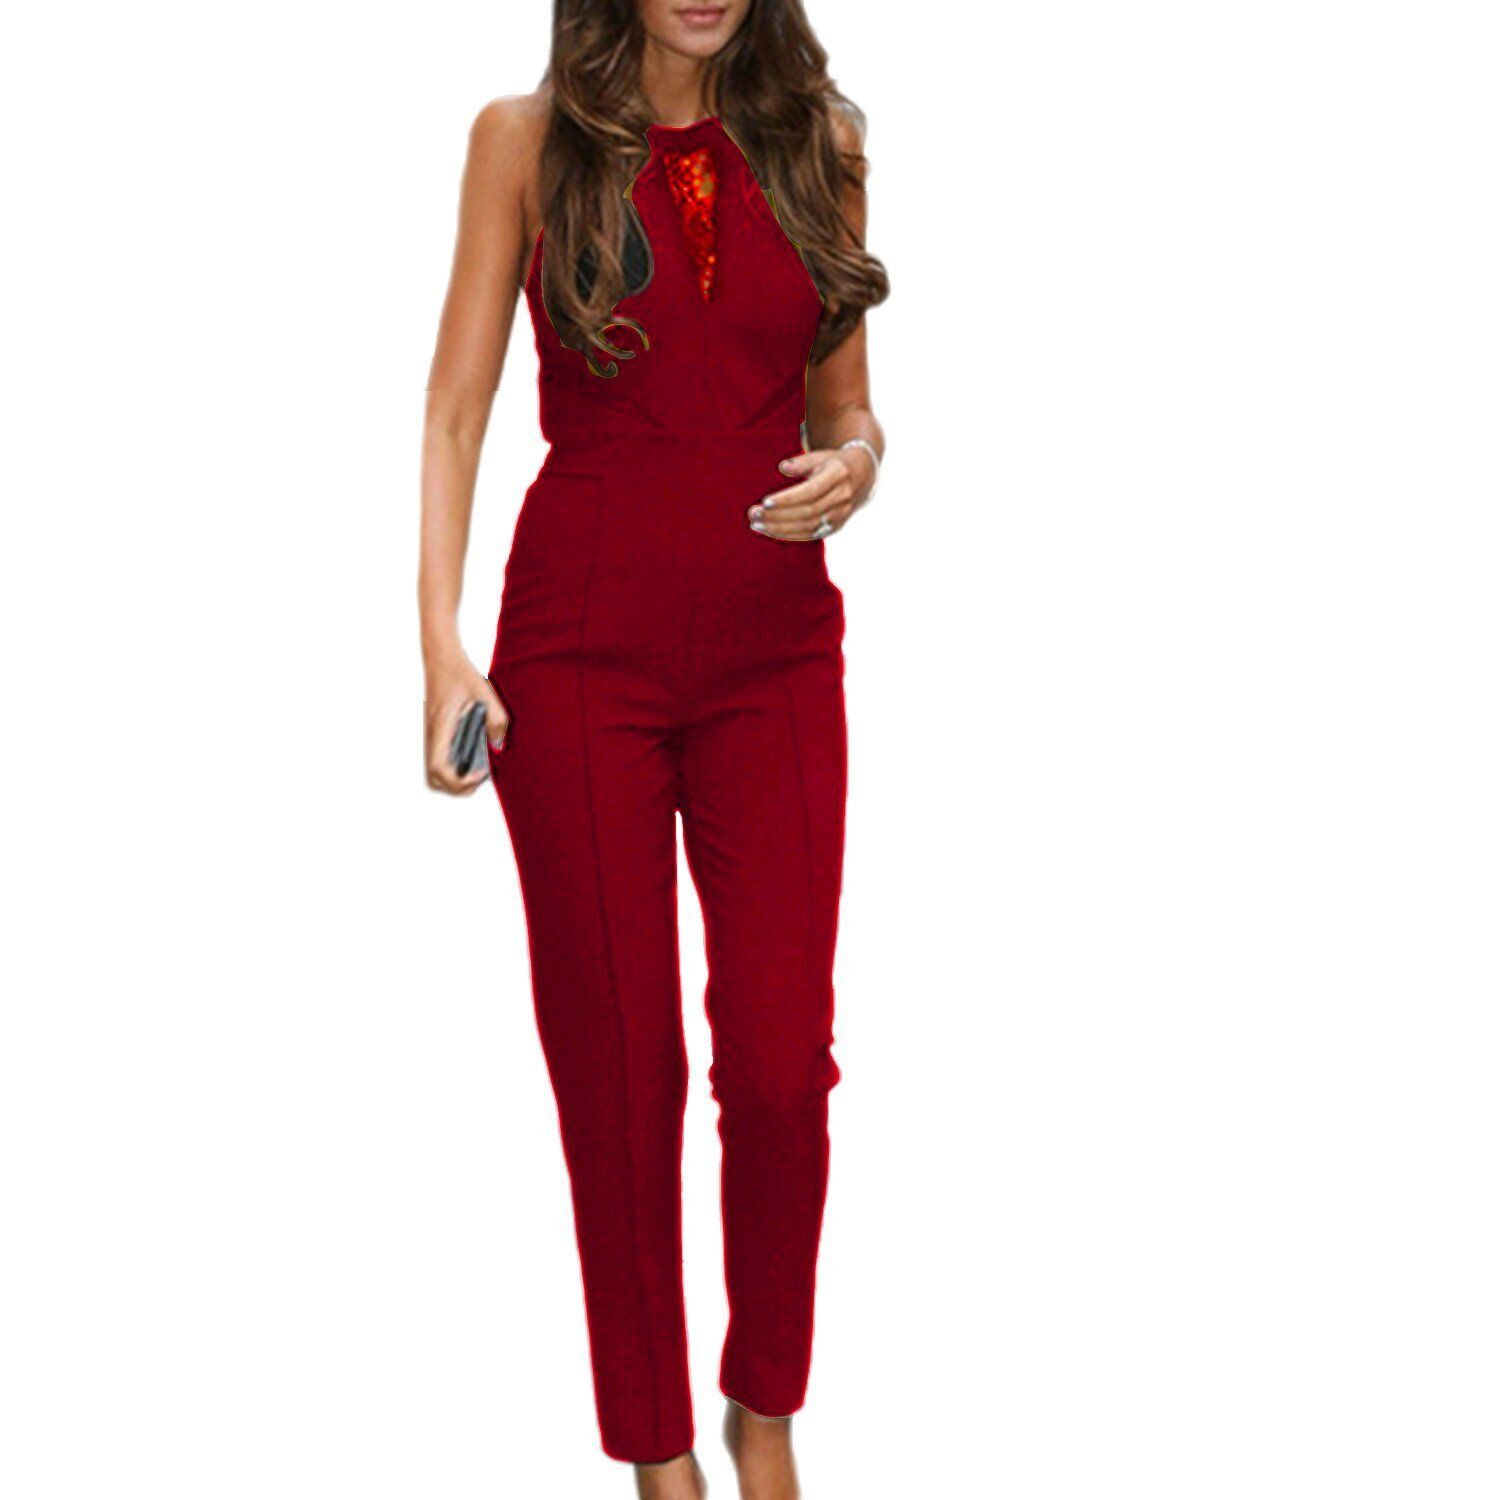 UK Women Ladies Casual Holiday Sleeveless Bodycon Romper Jumpsuit Club Party